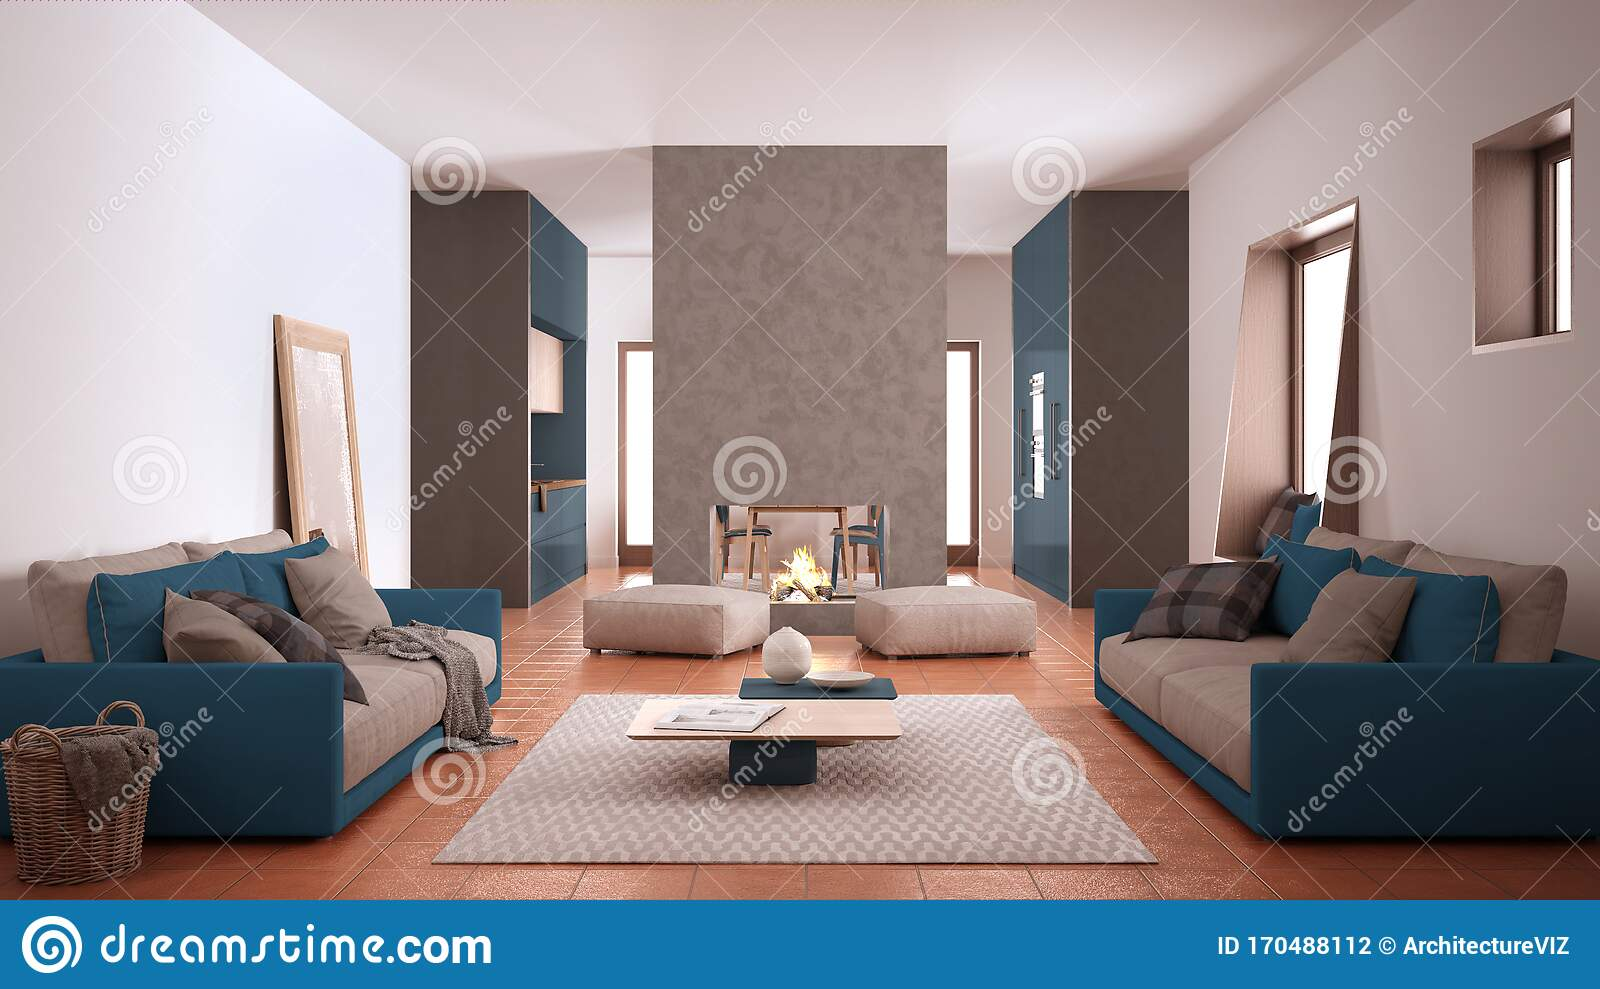 Cosy Blue And Beige Living Room With Sofa Carpet Table And Pouf Concrete Modern Fireplace And Walls Kitchen With Table Stock Illustration Illustration Of Apartment Residential 170488112